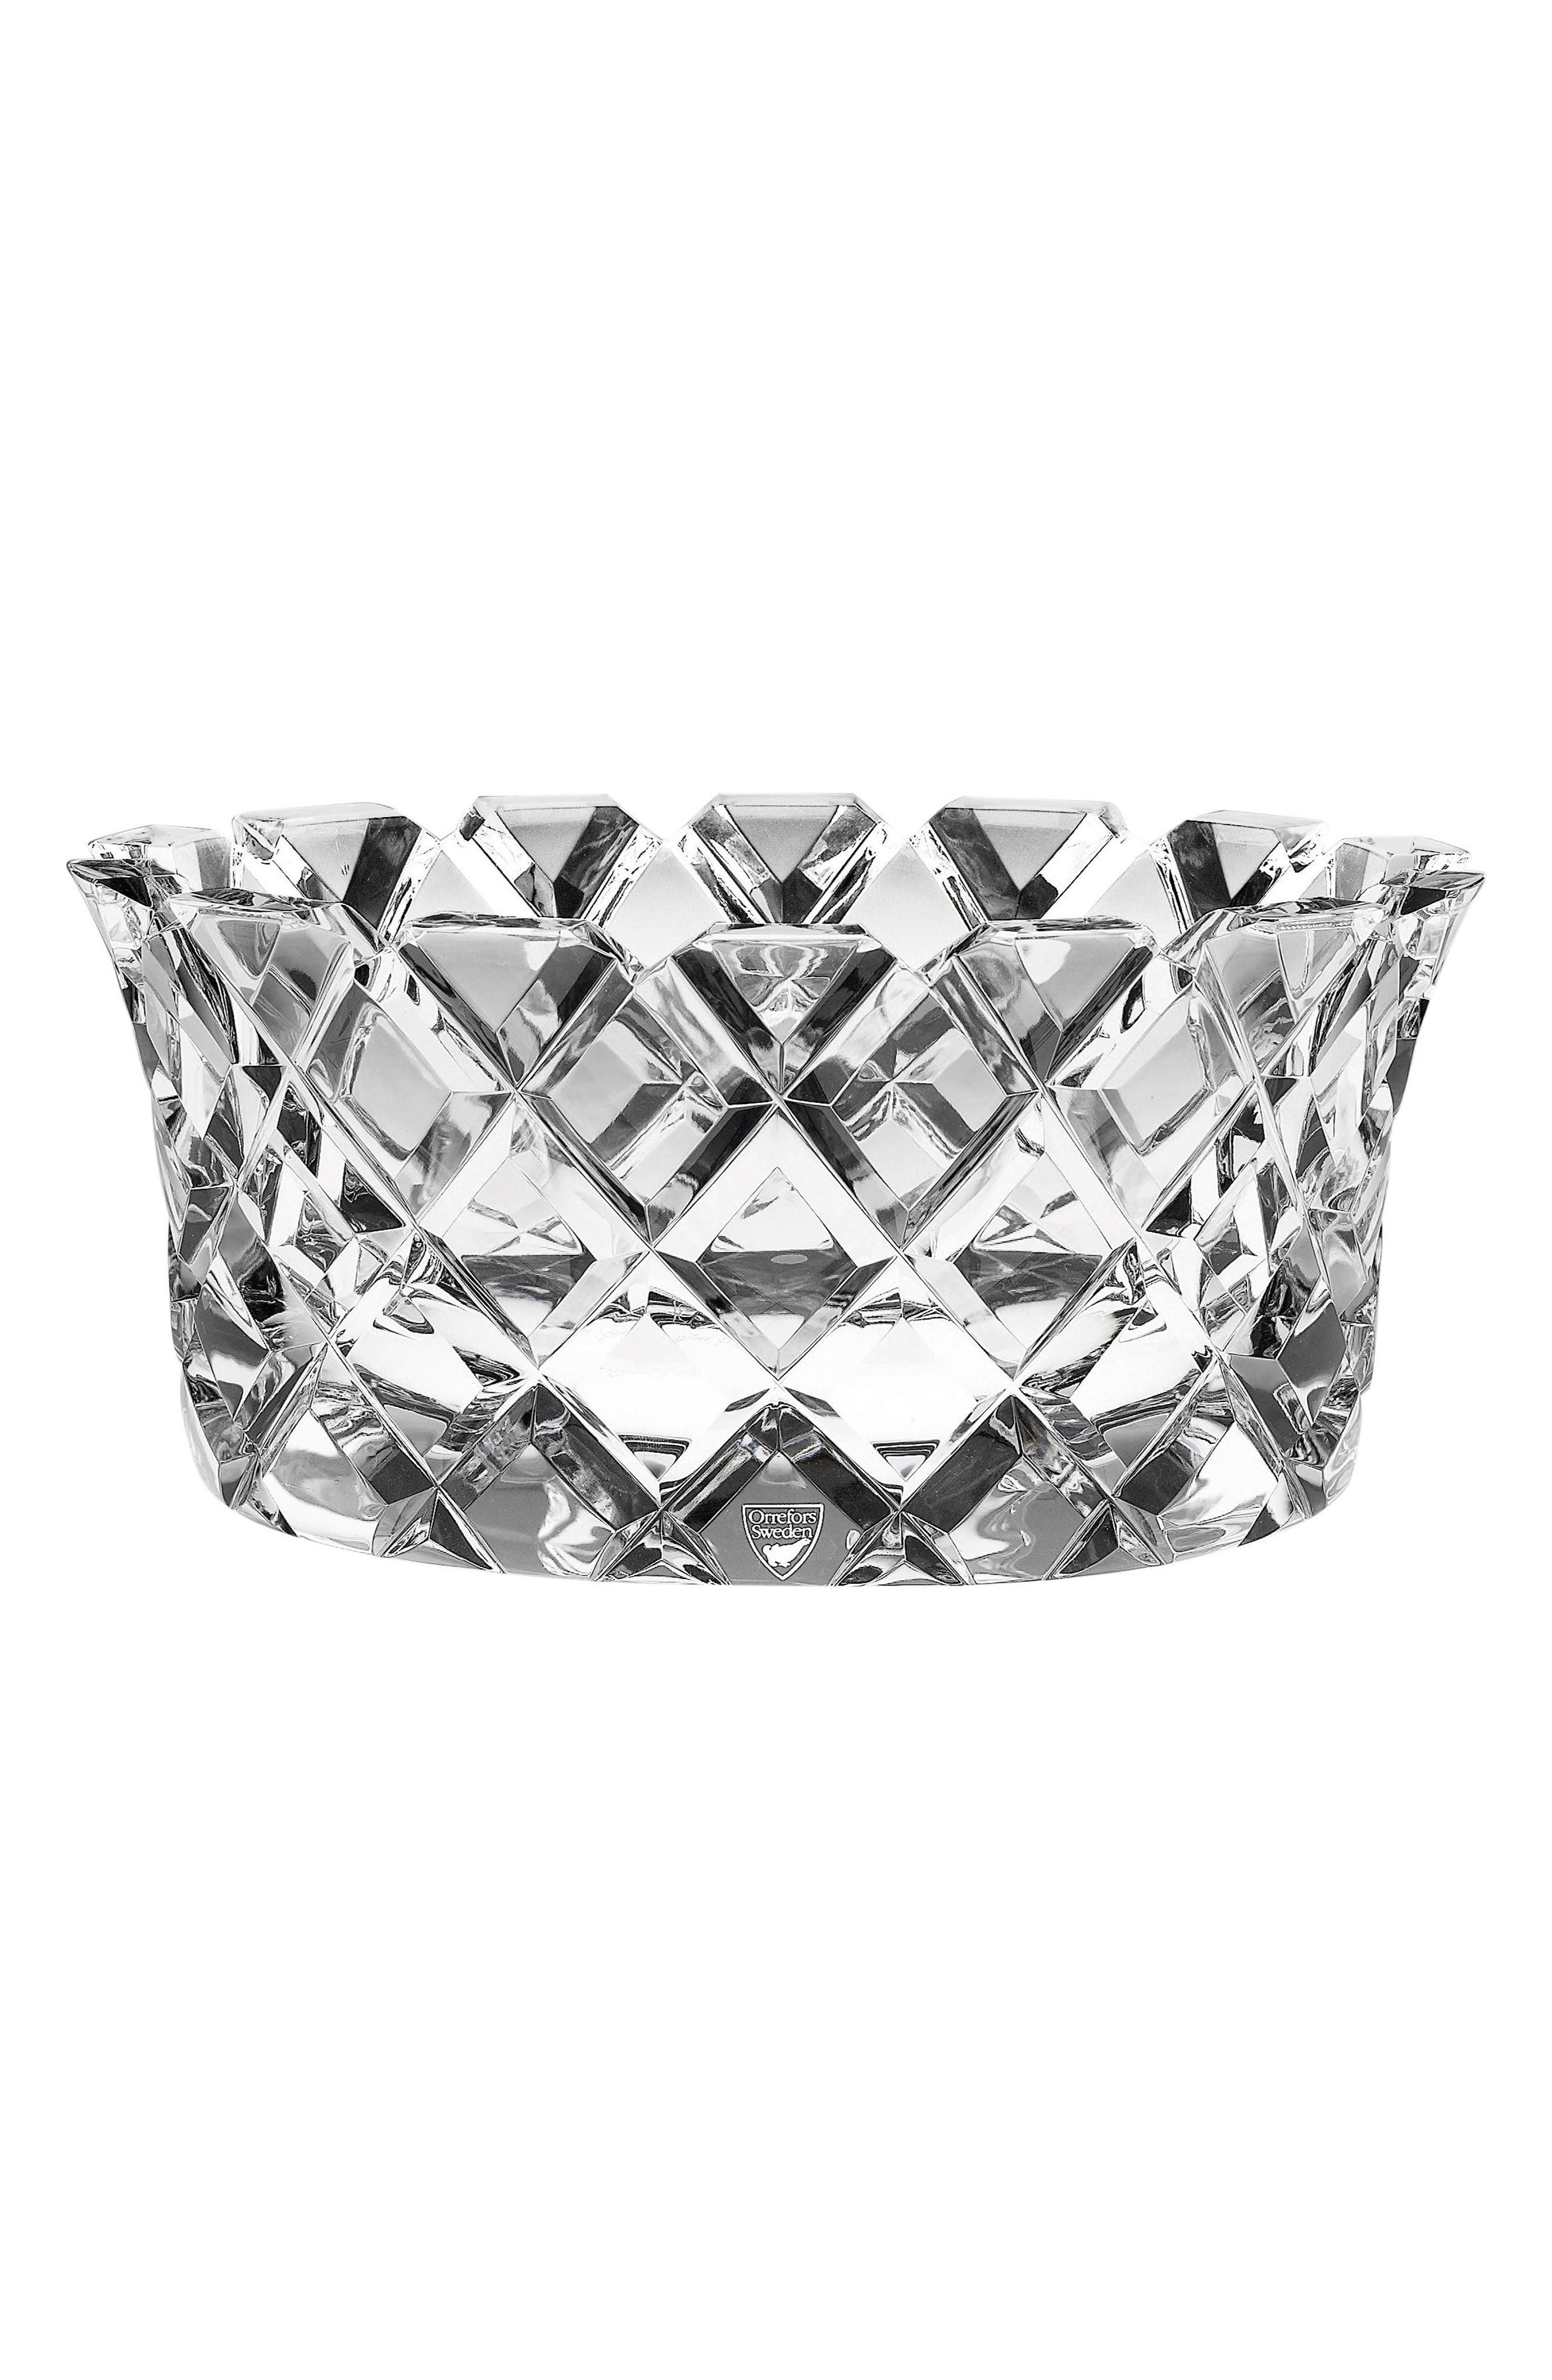 Sofiero Low Crystal Bowl,                         Main,                         color, Clear